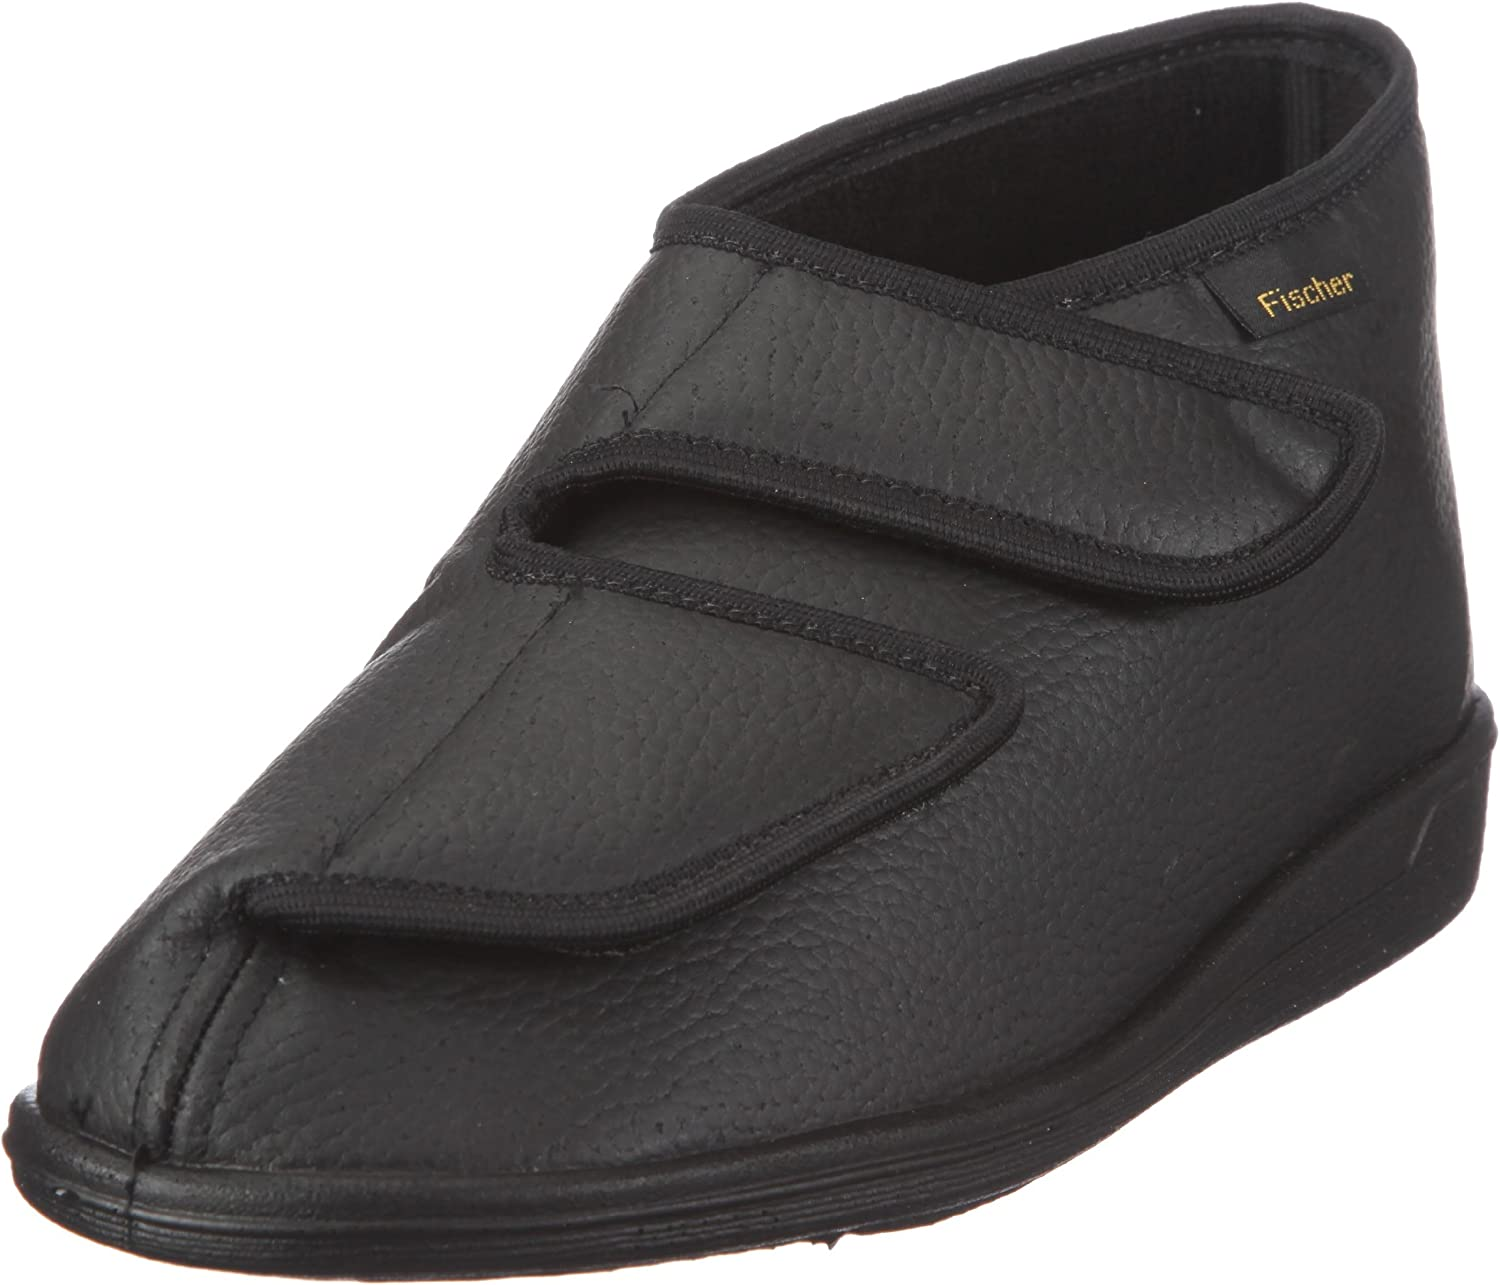 Fischer Men's Manufacturer direct delivery High Slippers Hi-Top In a popularity